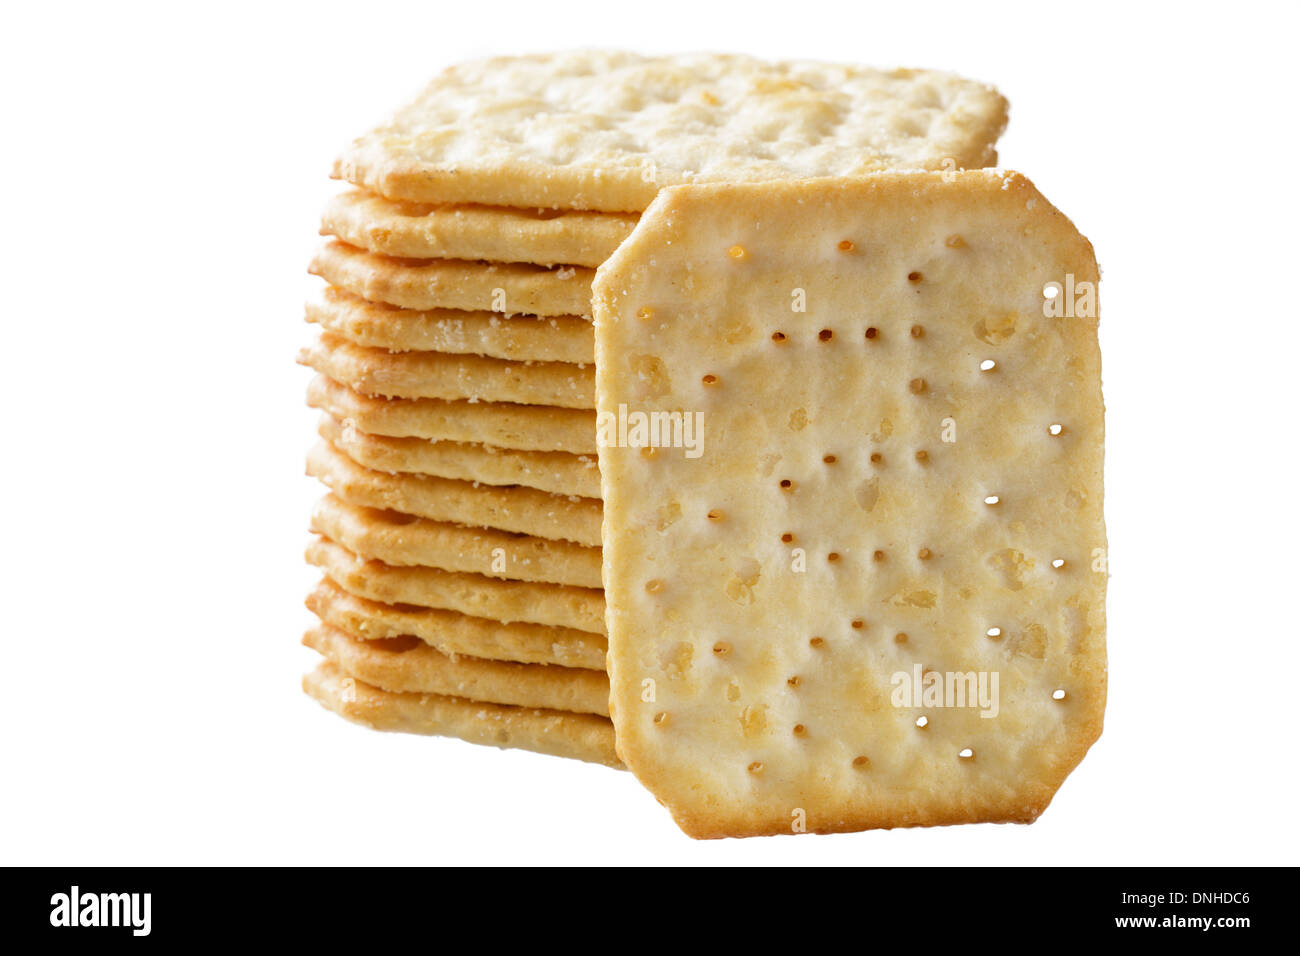 Tuc Biscuits Stock Photo Royalty Free Image 64922598 Alamy